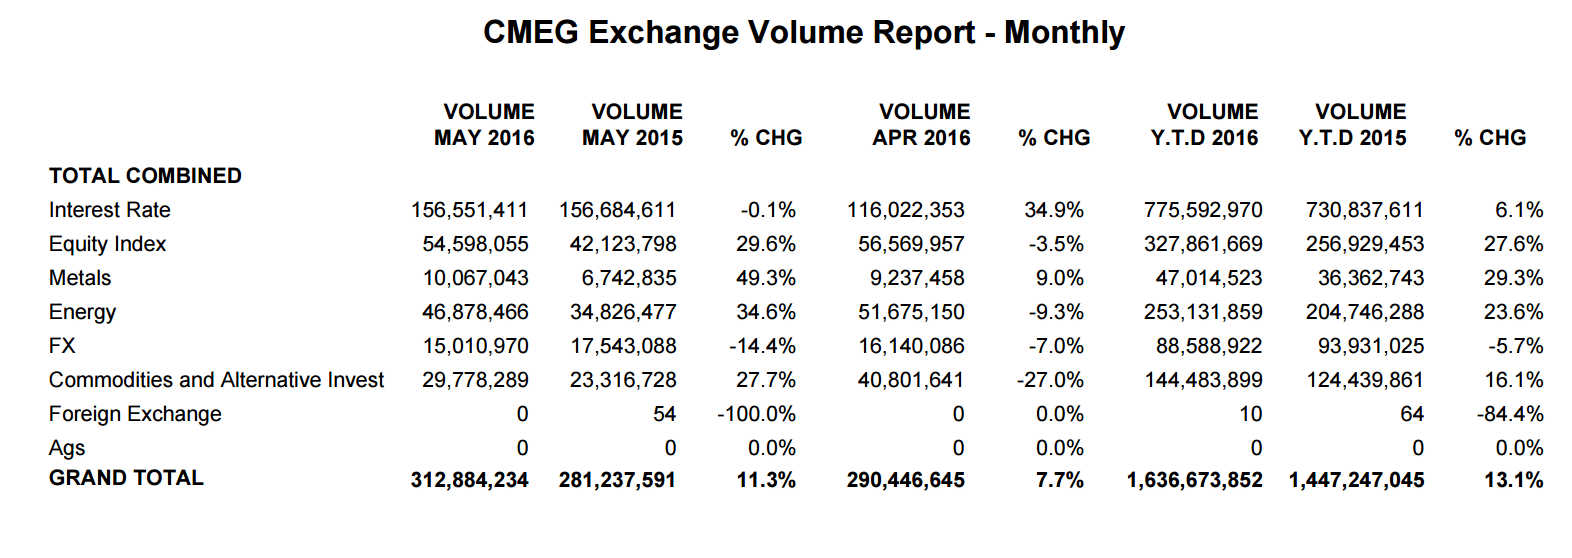 Source: CME Group May 2016 Totals